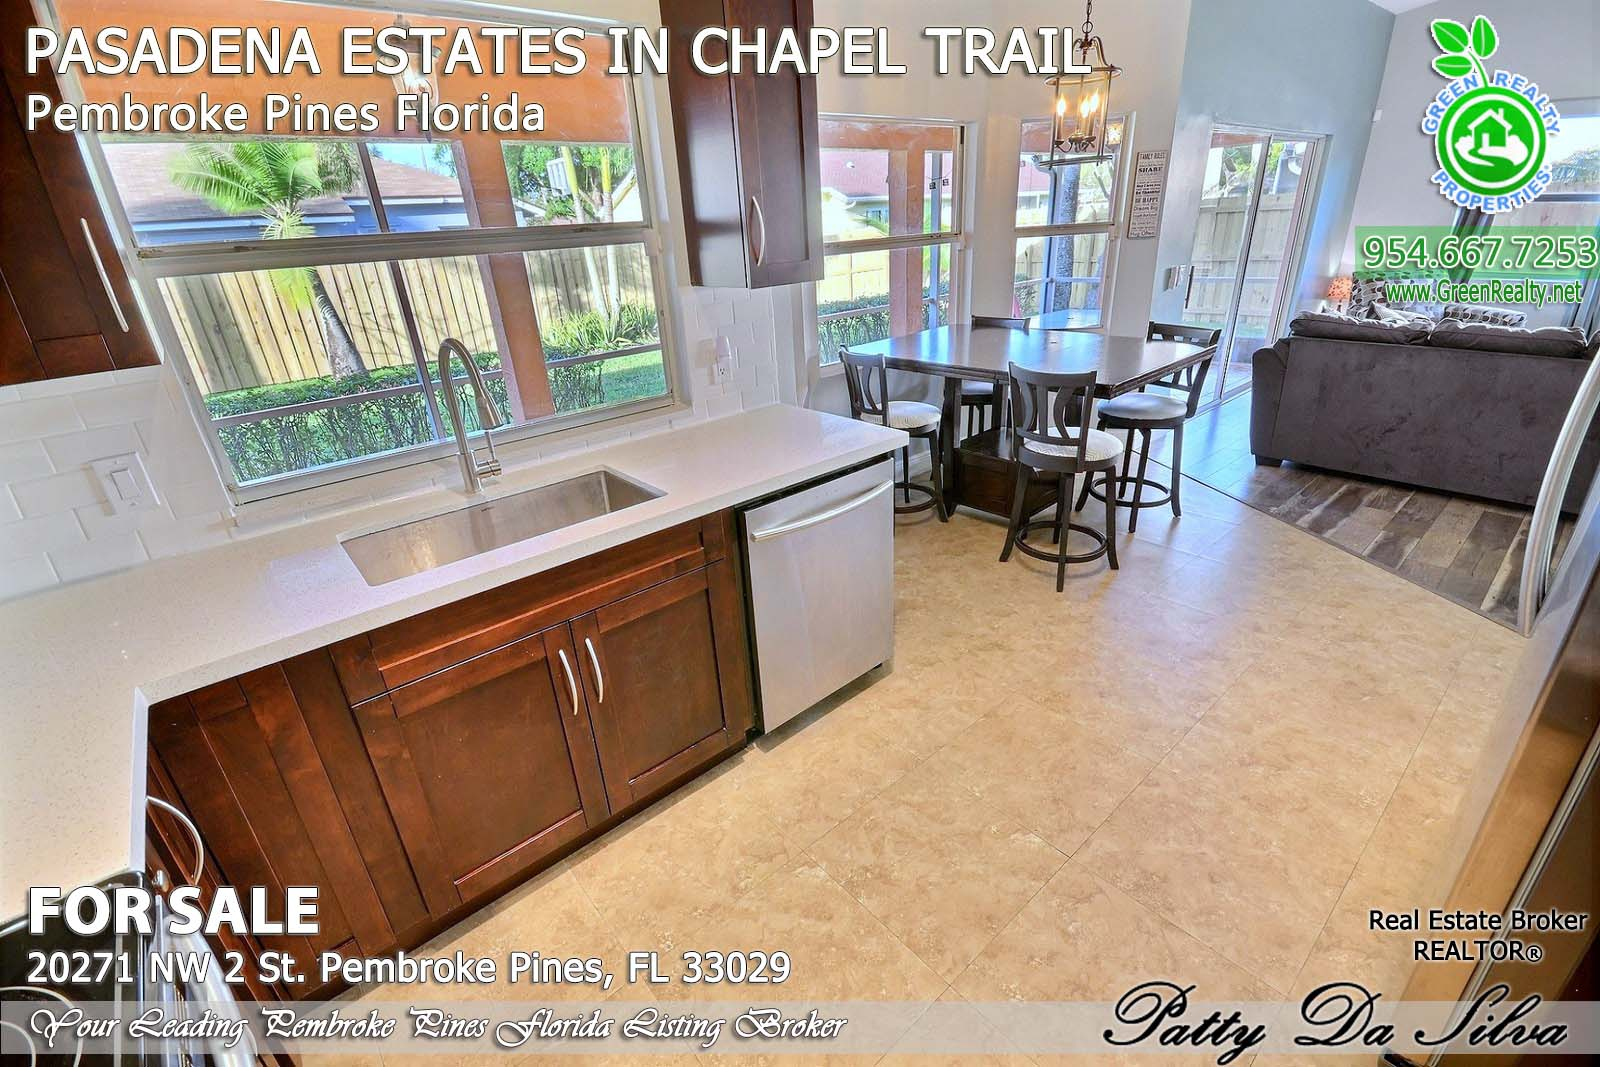 Pasadena Estates of Chapel Trail - Pembroke Pines FL (30)